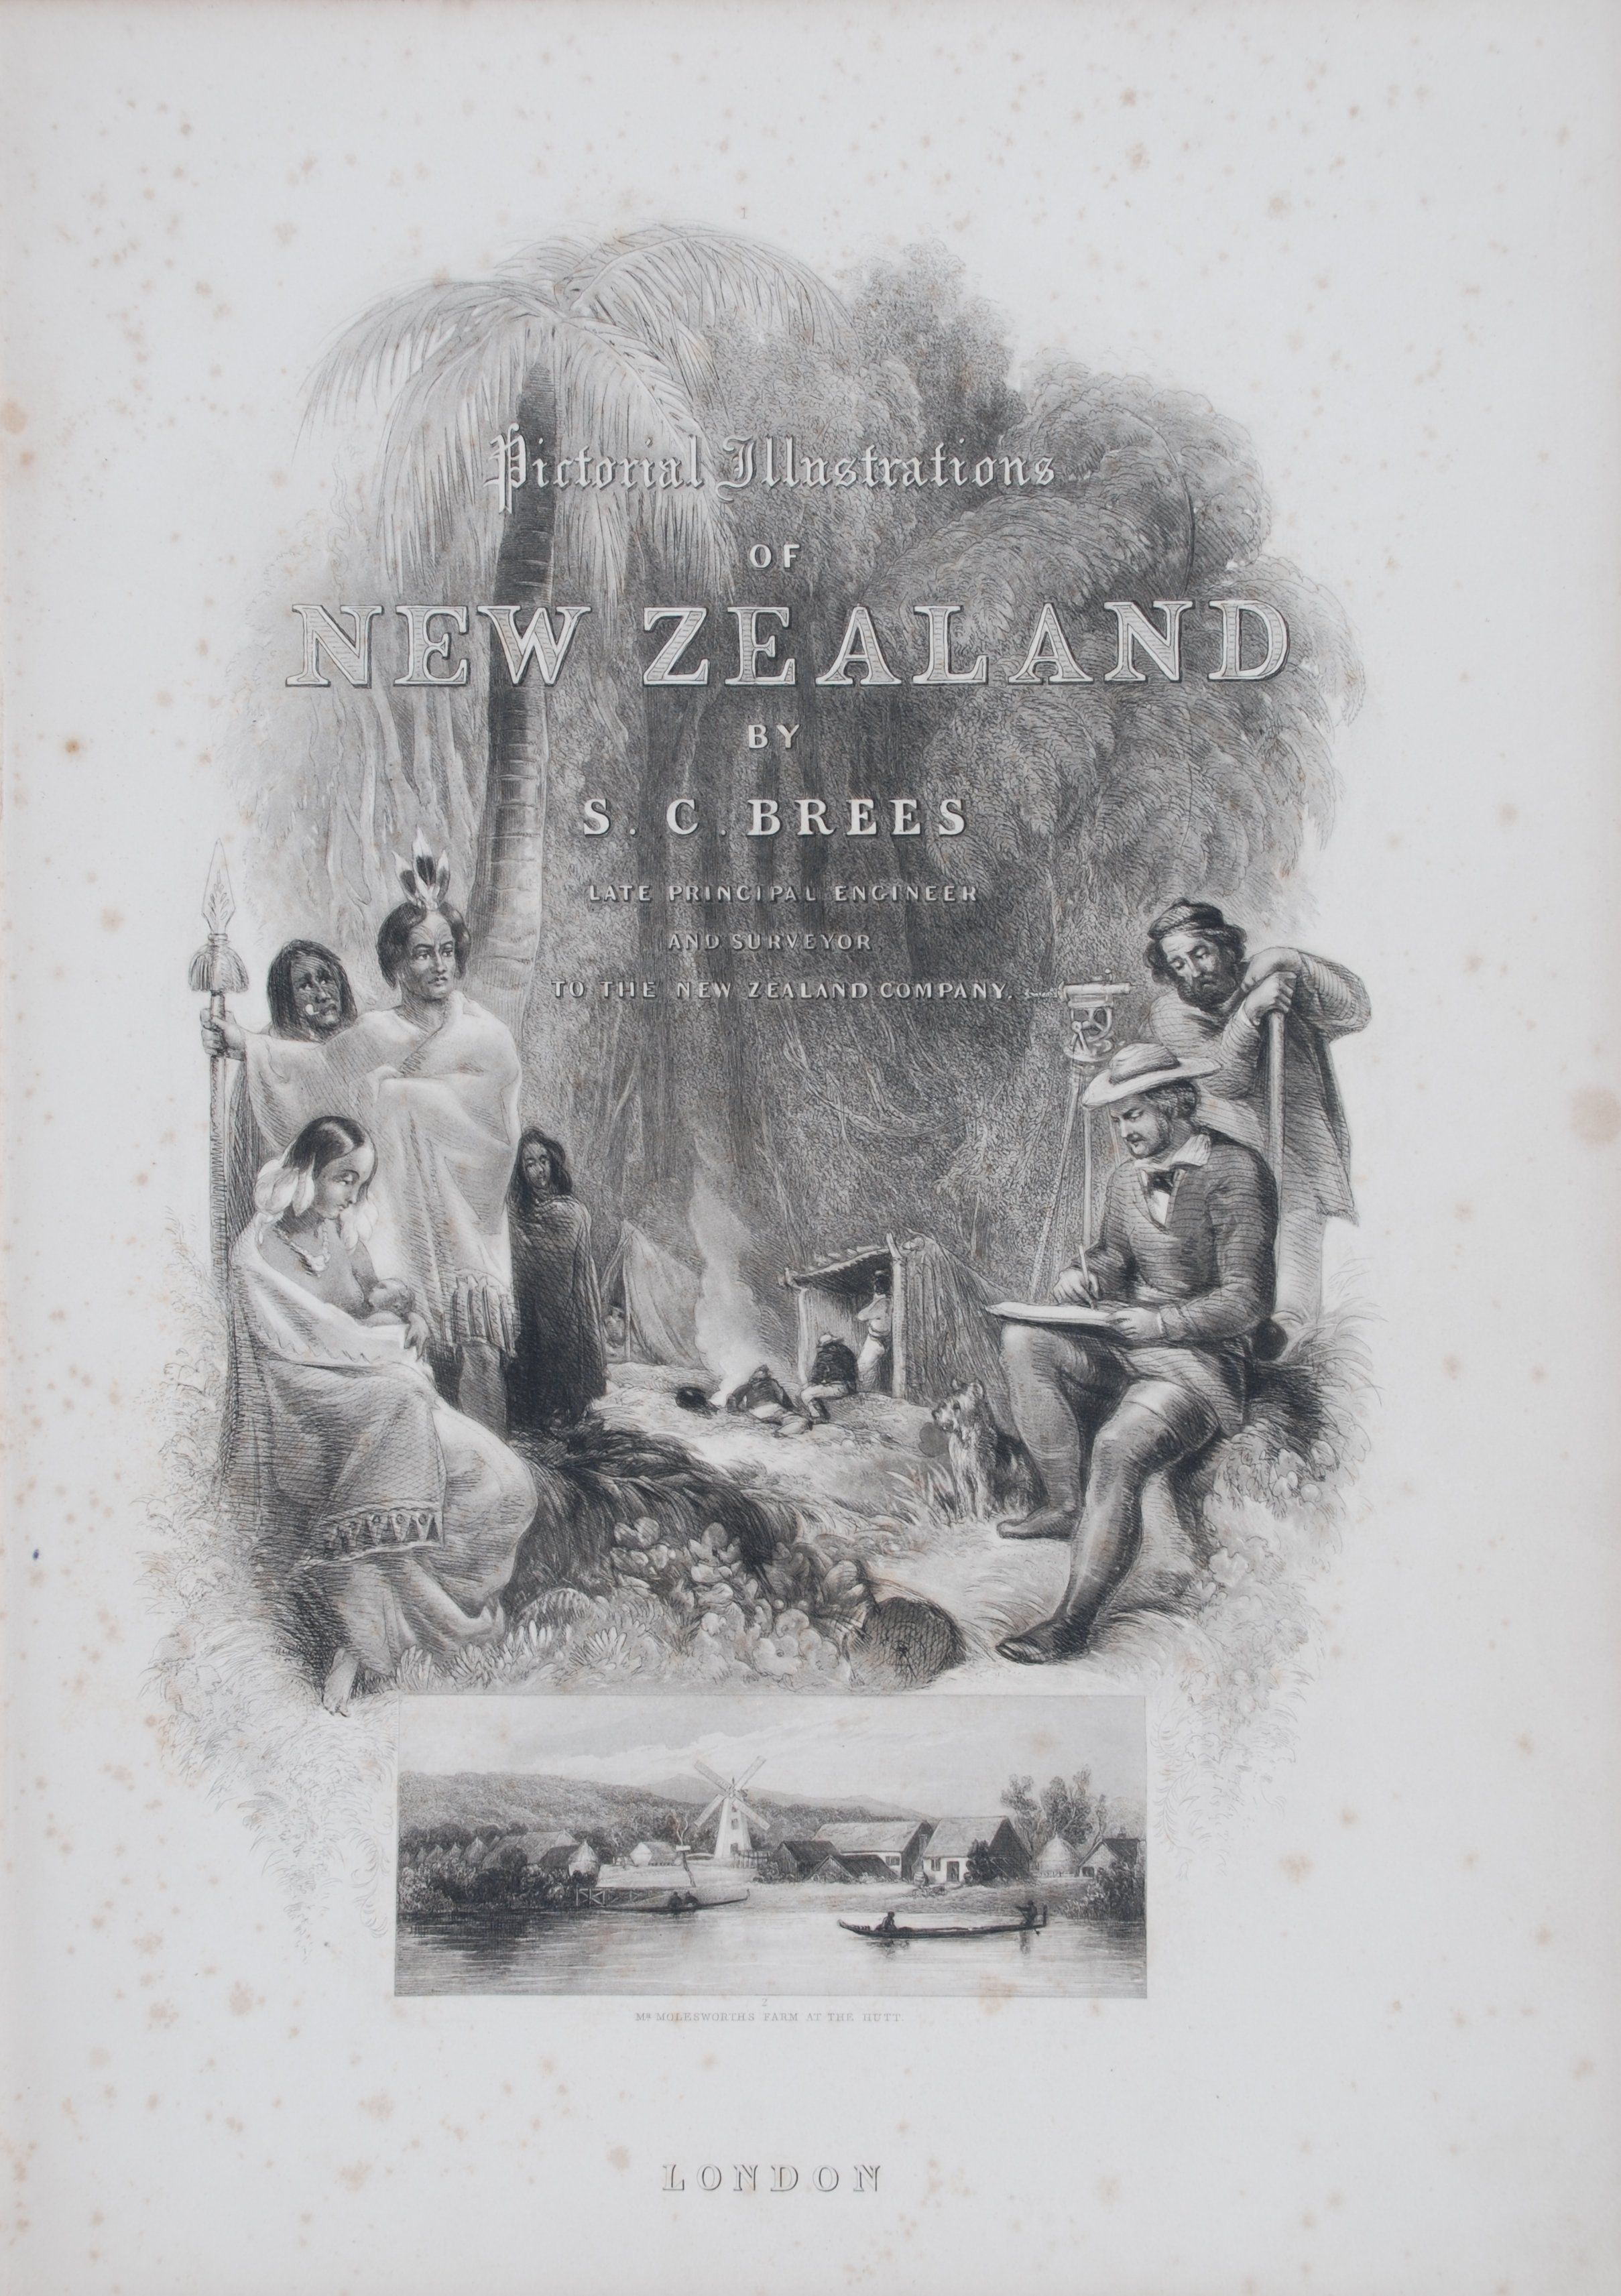 Samuel Charles Brees. Pictorial Illustrations of New Zealand.  London: John Williams and Co., 1848.